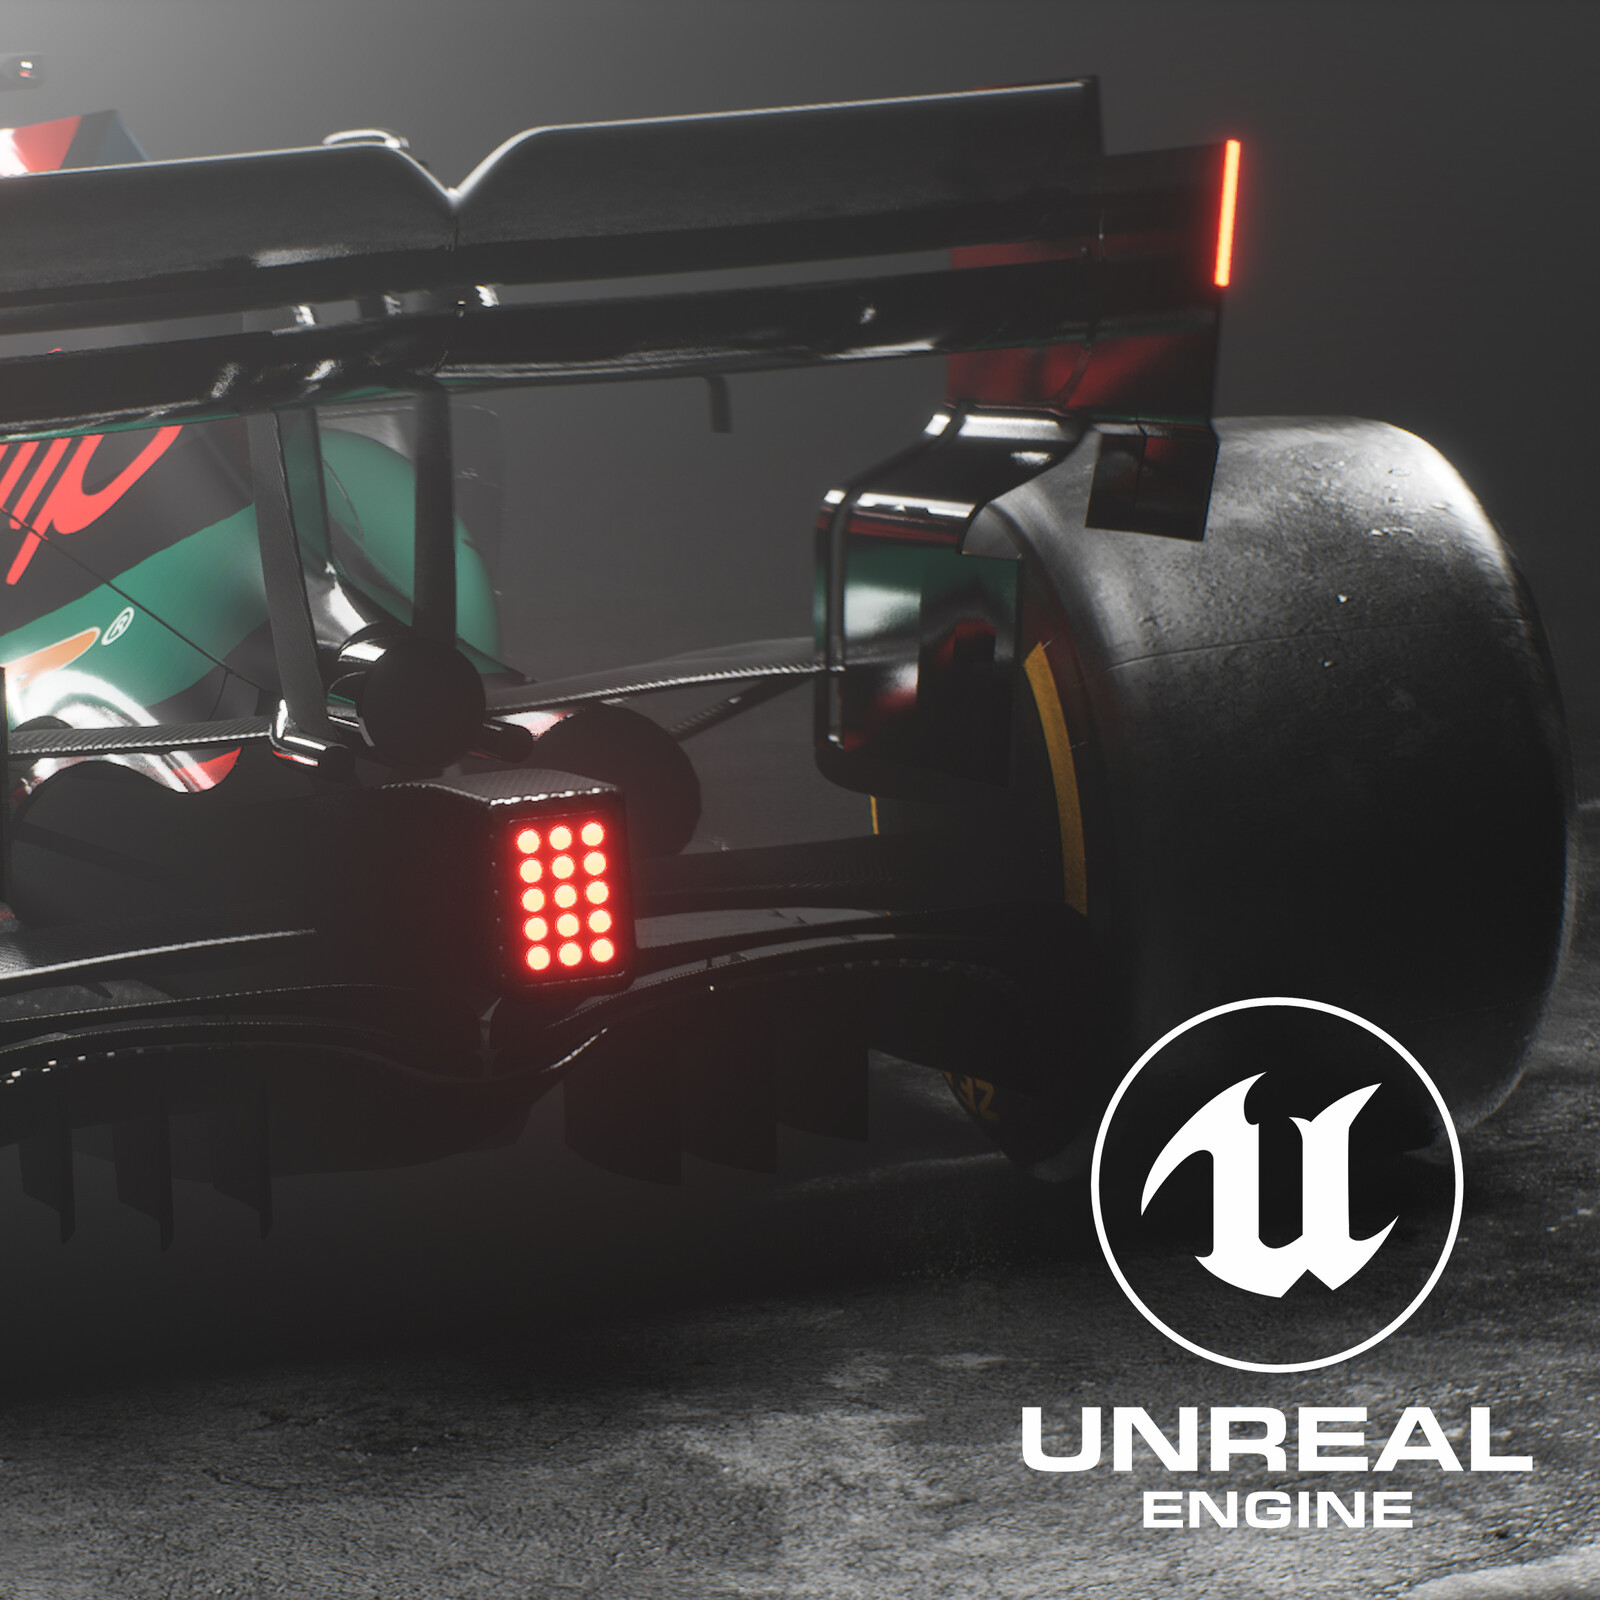 ASR-One in Unreal Engine (RTX On)